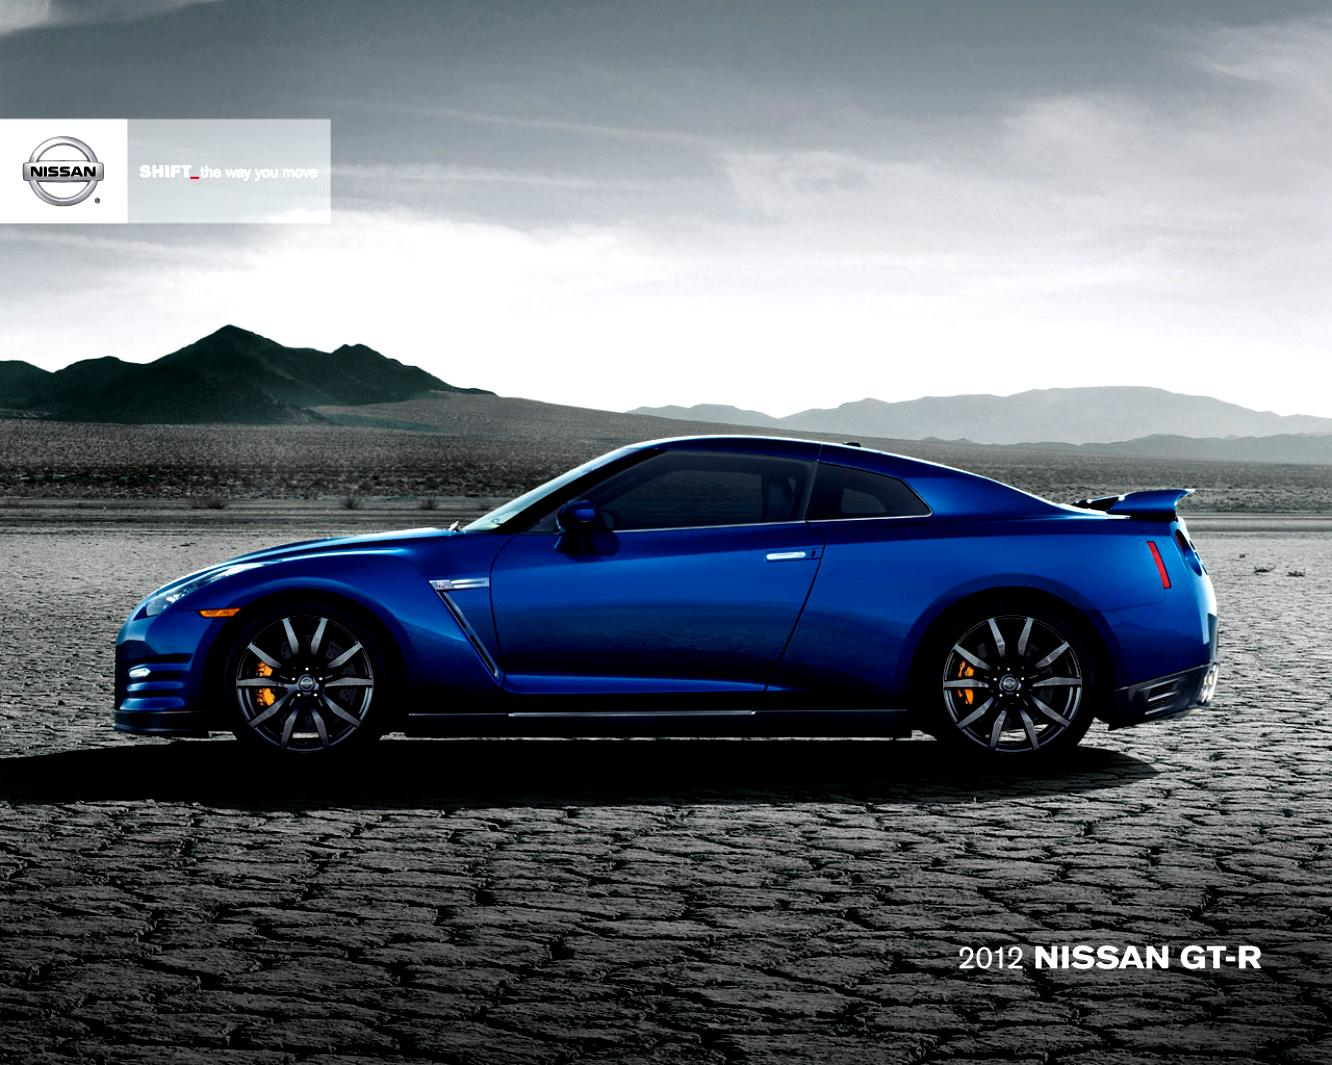 Nissan Gt R R35 Facelift 2011 On Motoimg Com